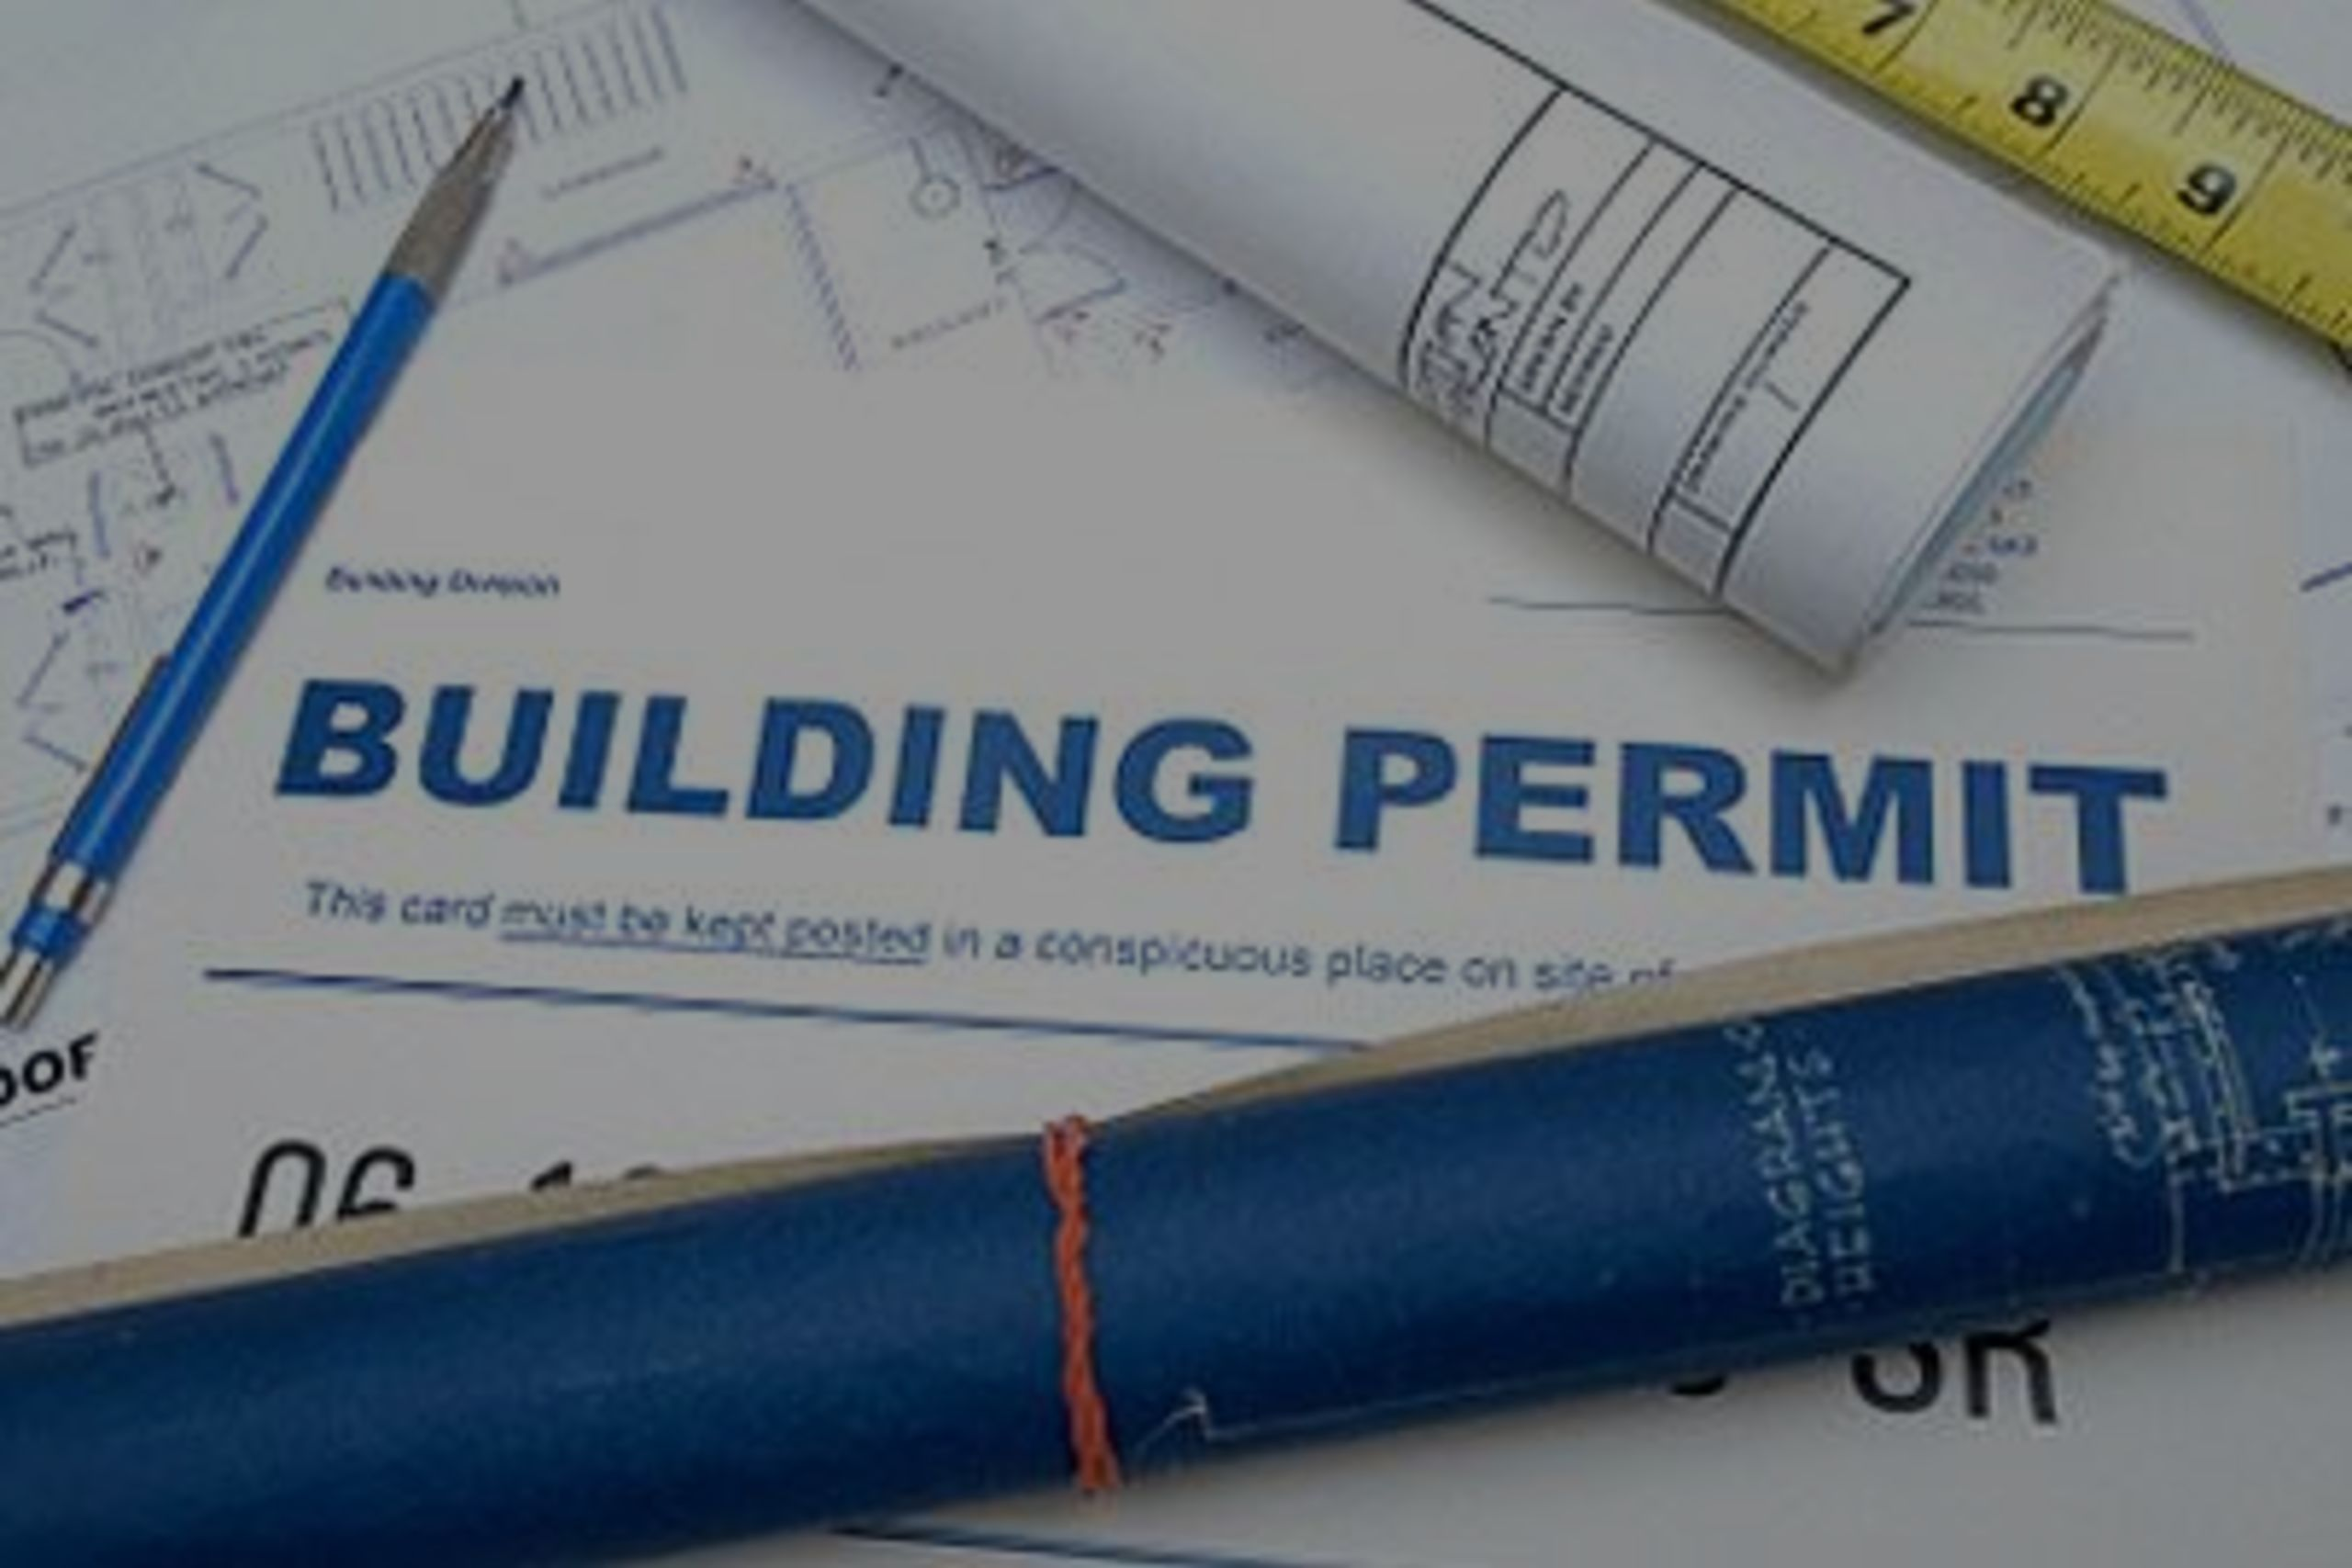 Fla. building permits rose 20.8% year-to-year